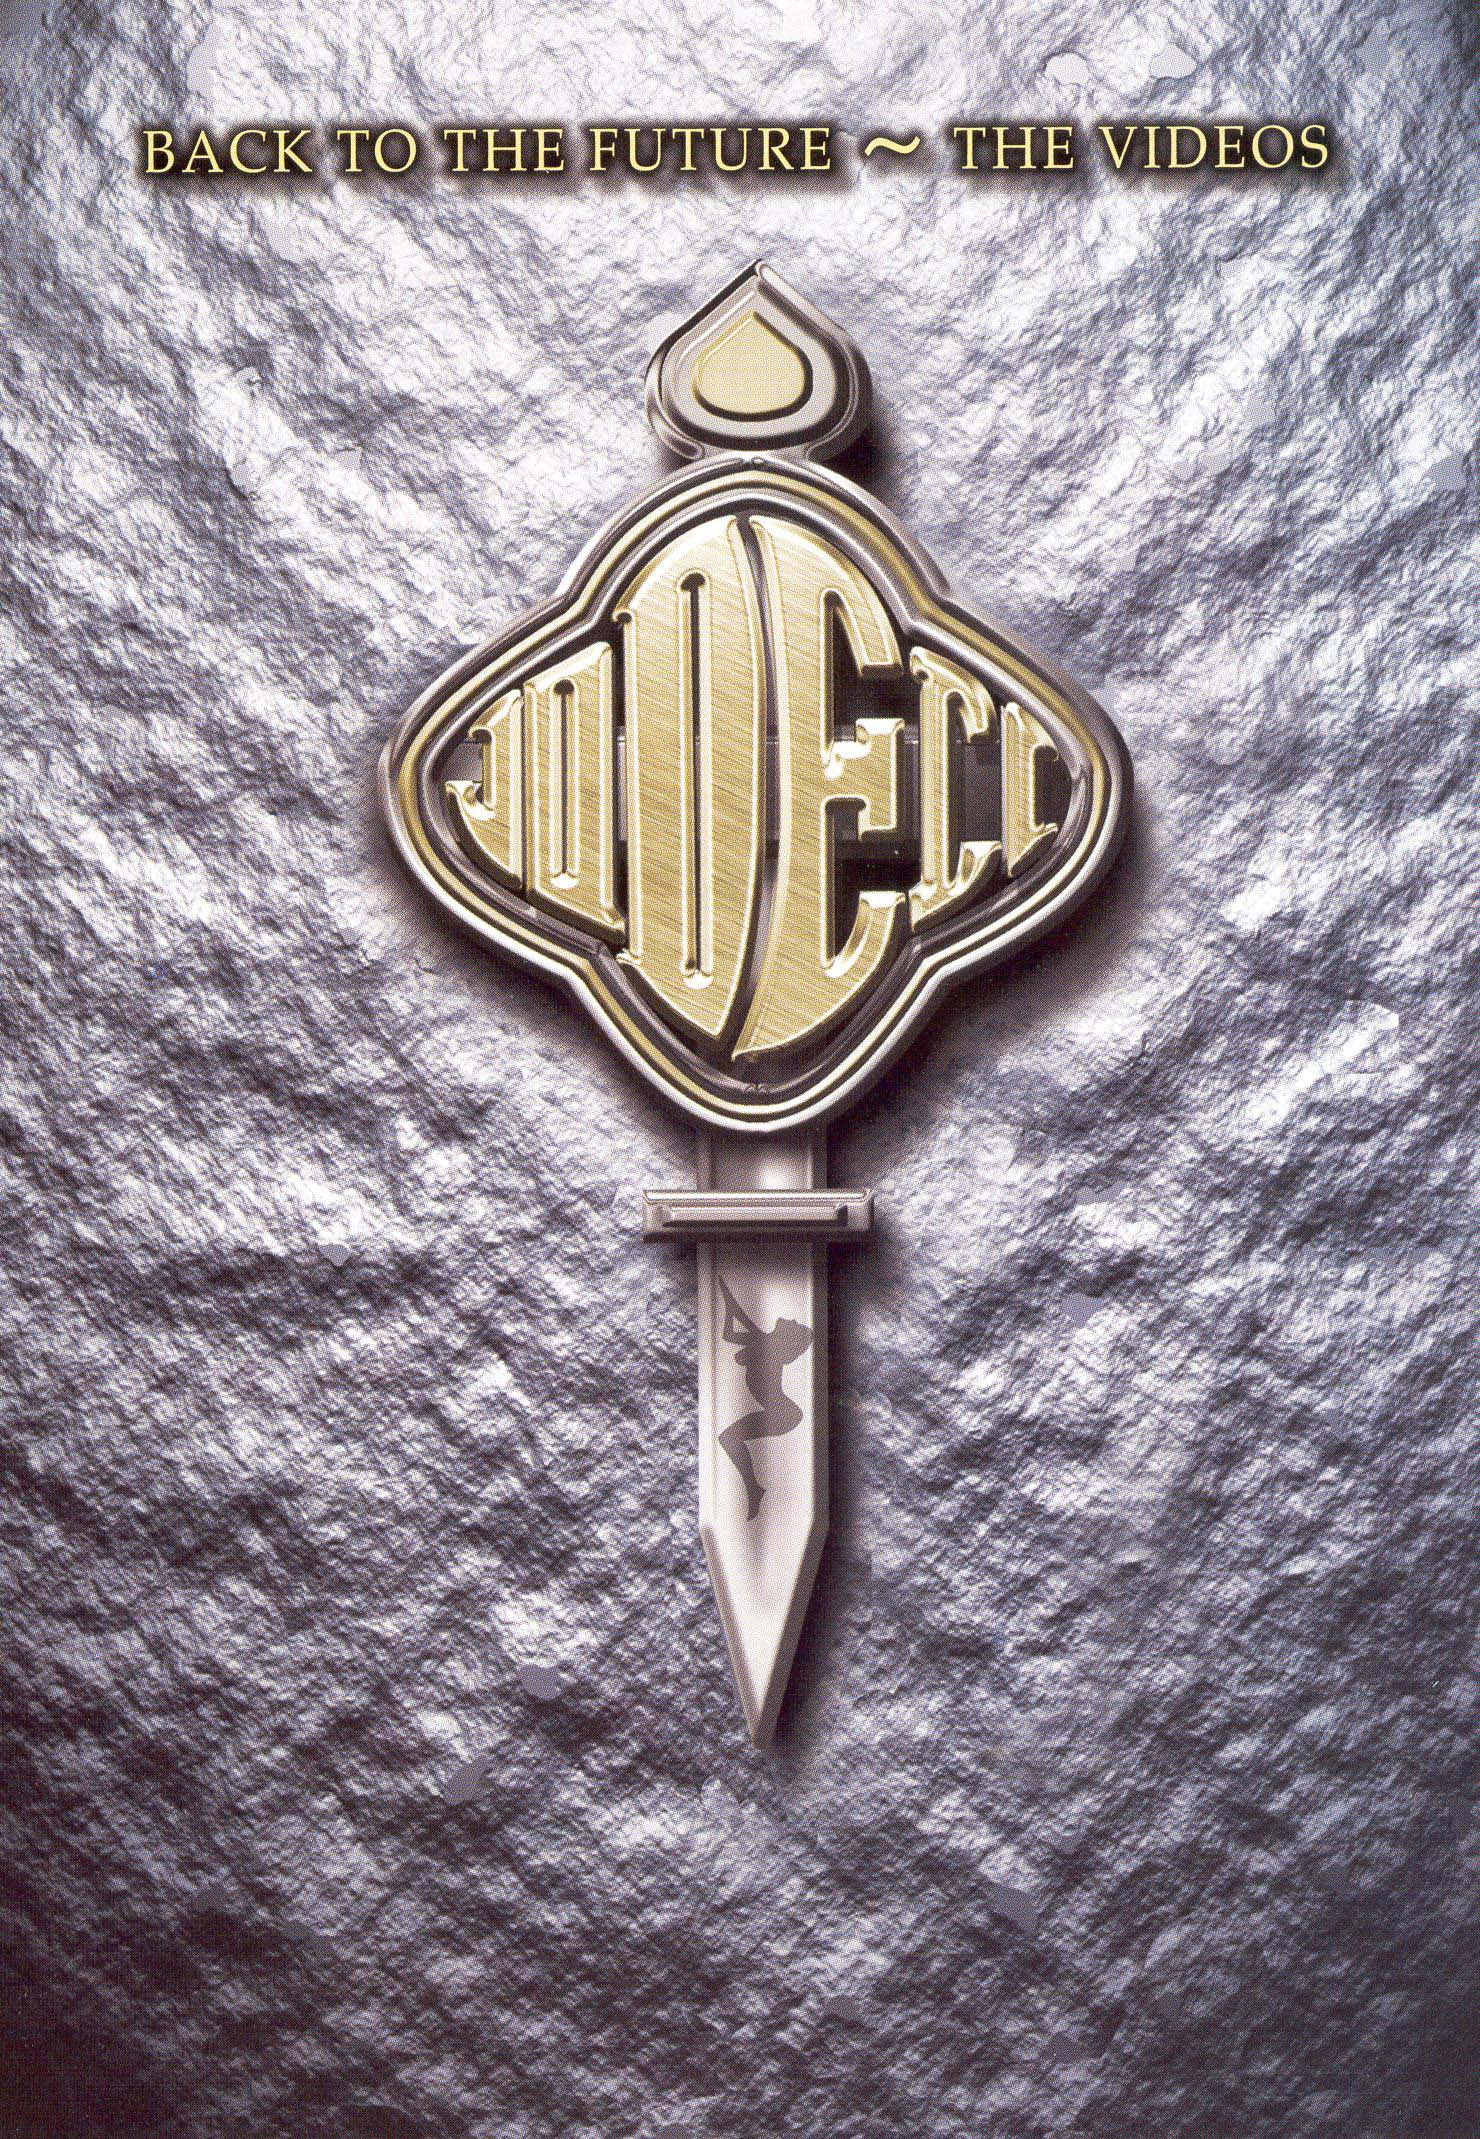 Jodeci: Back to the Future: The Very Best of Jodeci